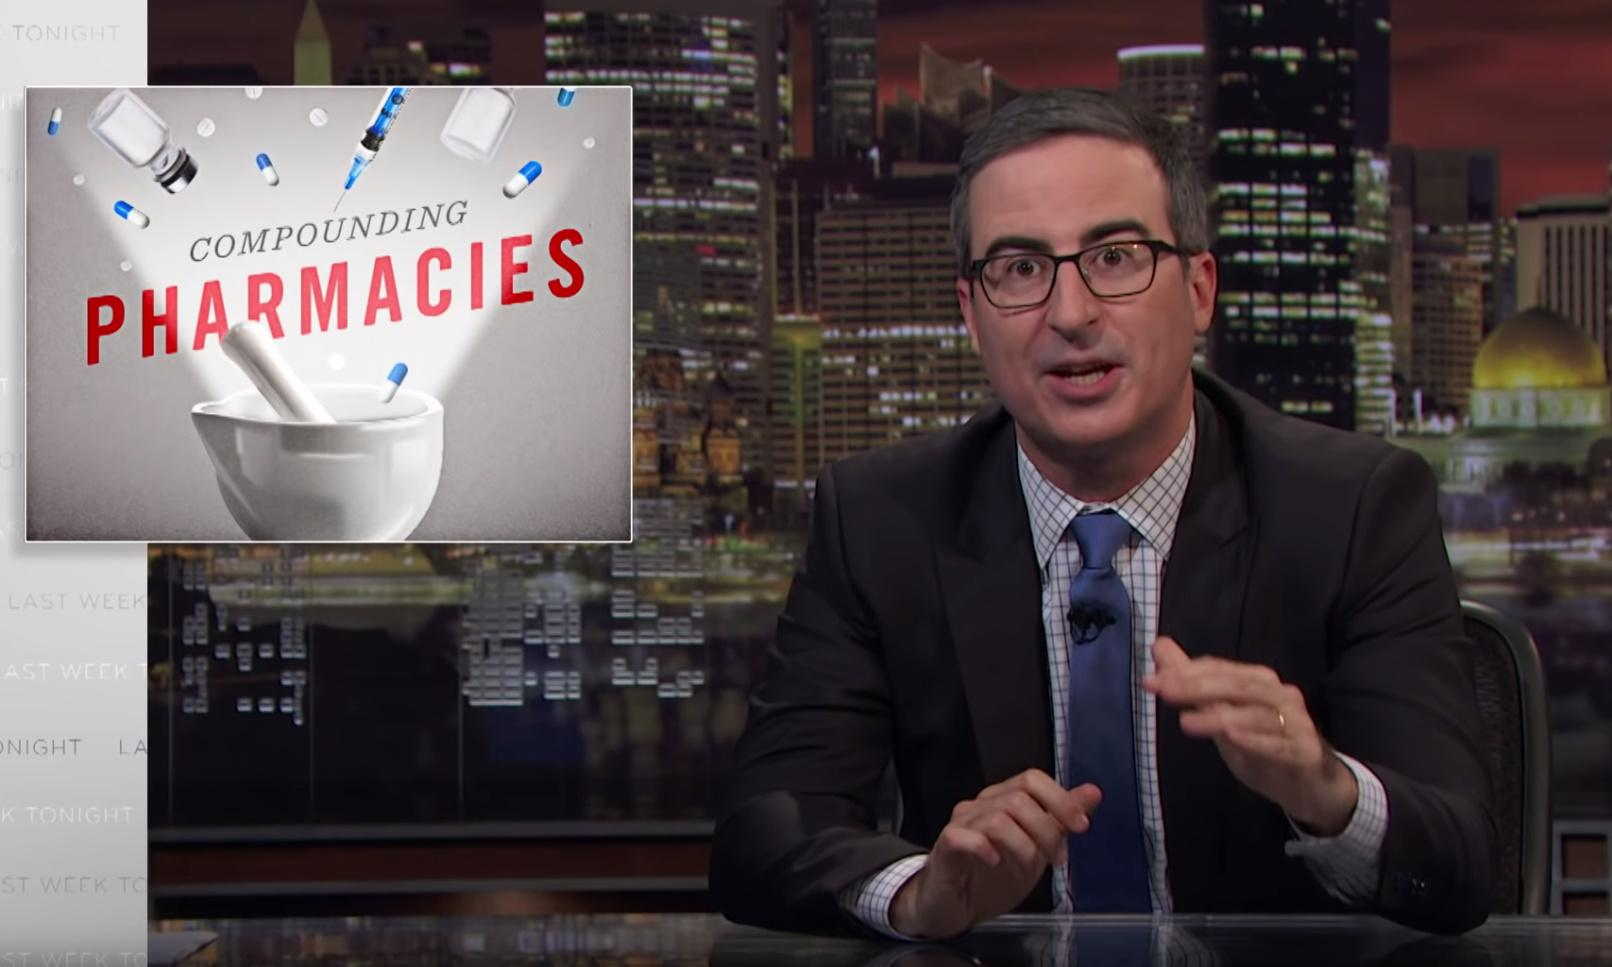 'Wild west of the drug industry': John Oliver takes on compounding pharmacies